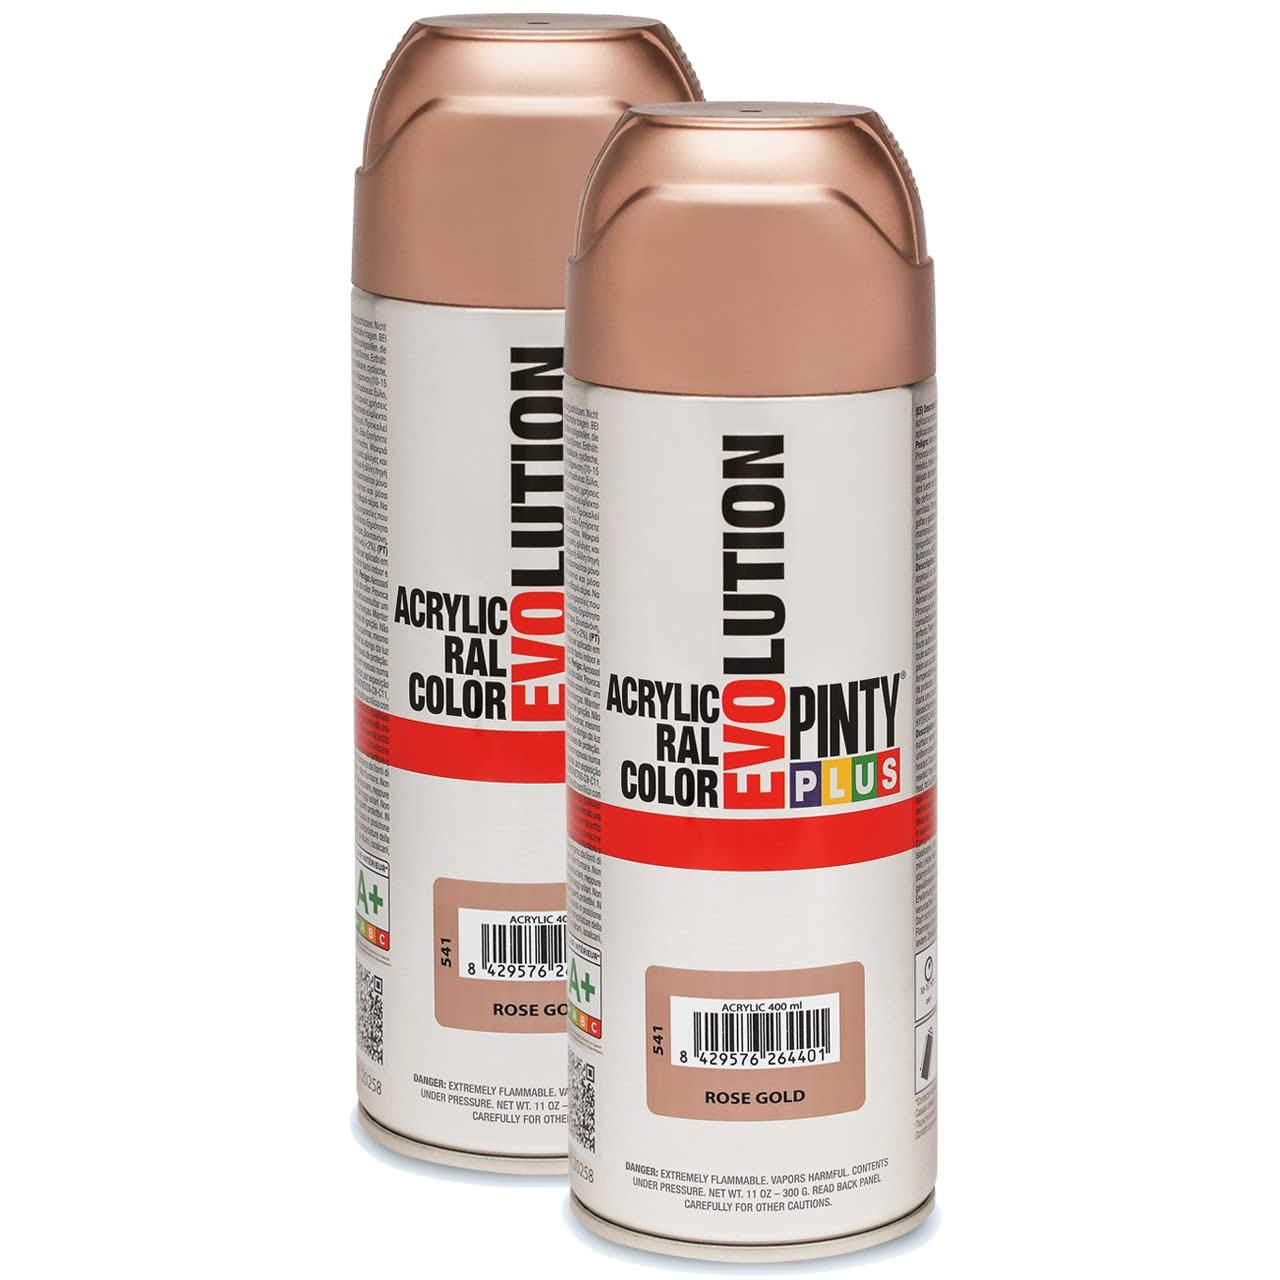 Fast Dry, Low Odor - Acrylic Spray Paint PintyPlus Evolution - Pack of 2 (Rose Gold)